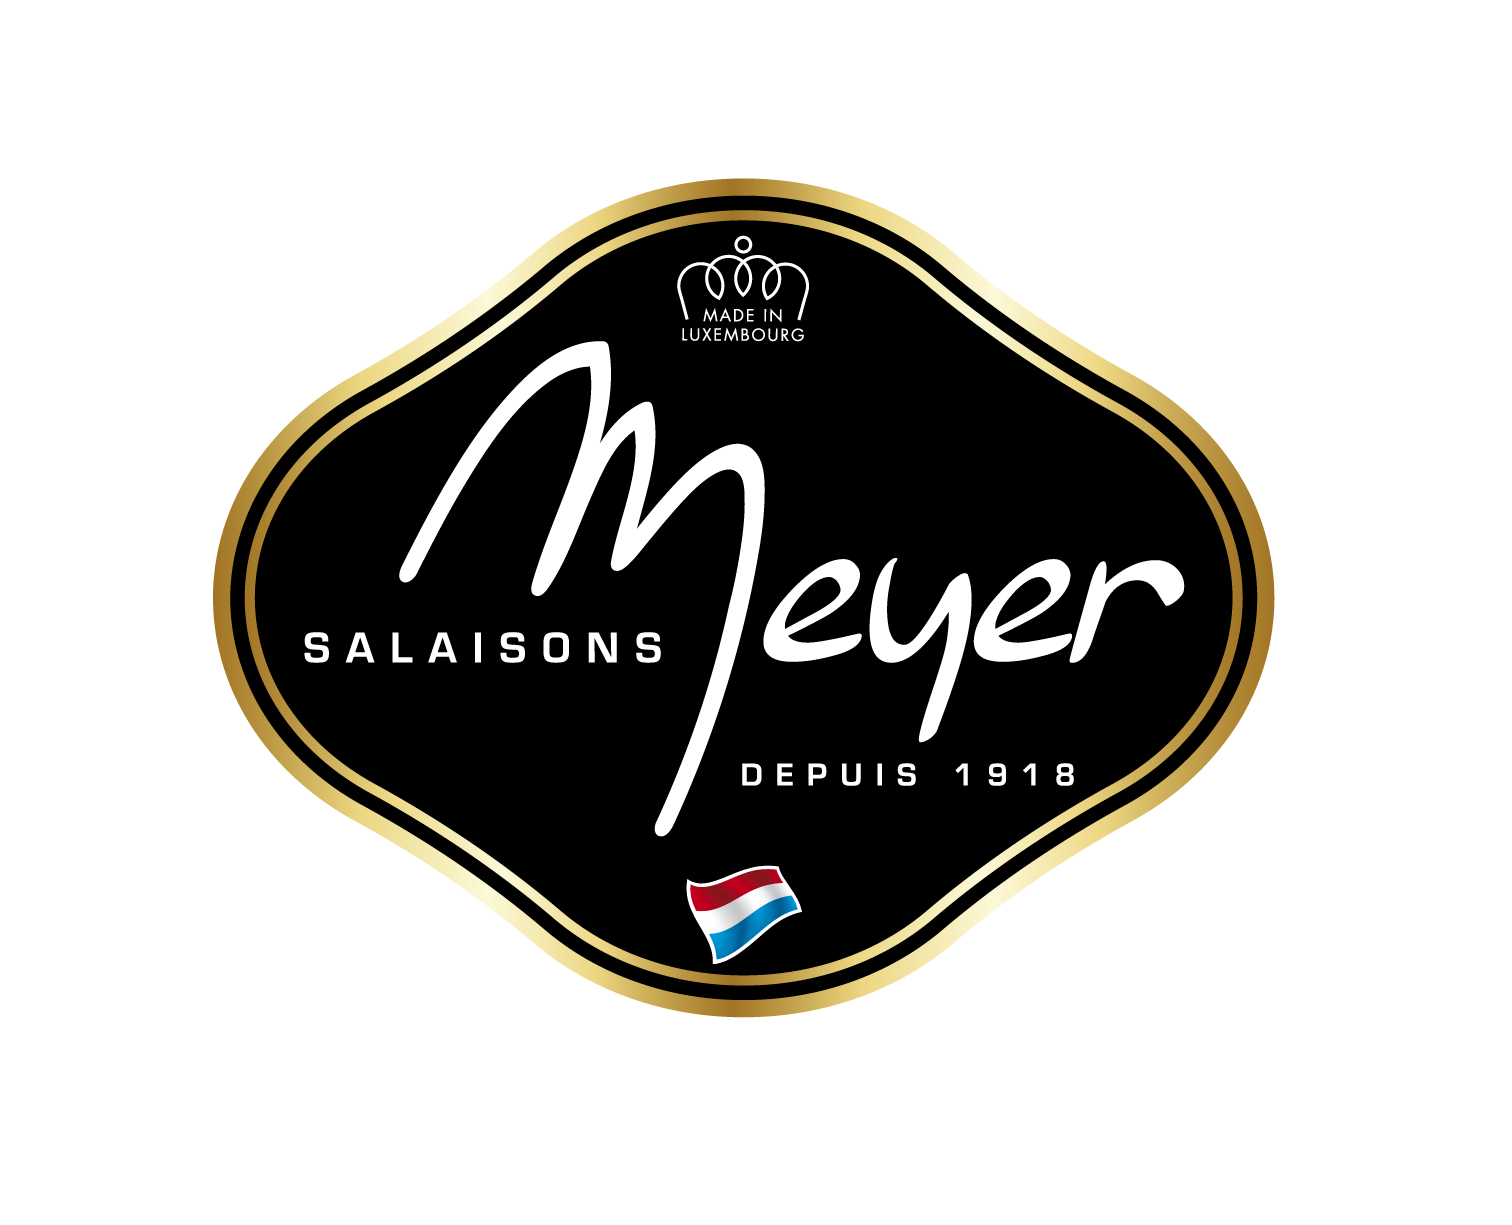 Salaisons Meyer